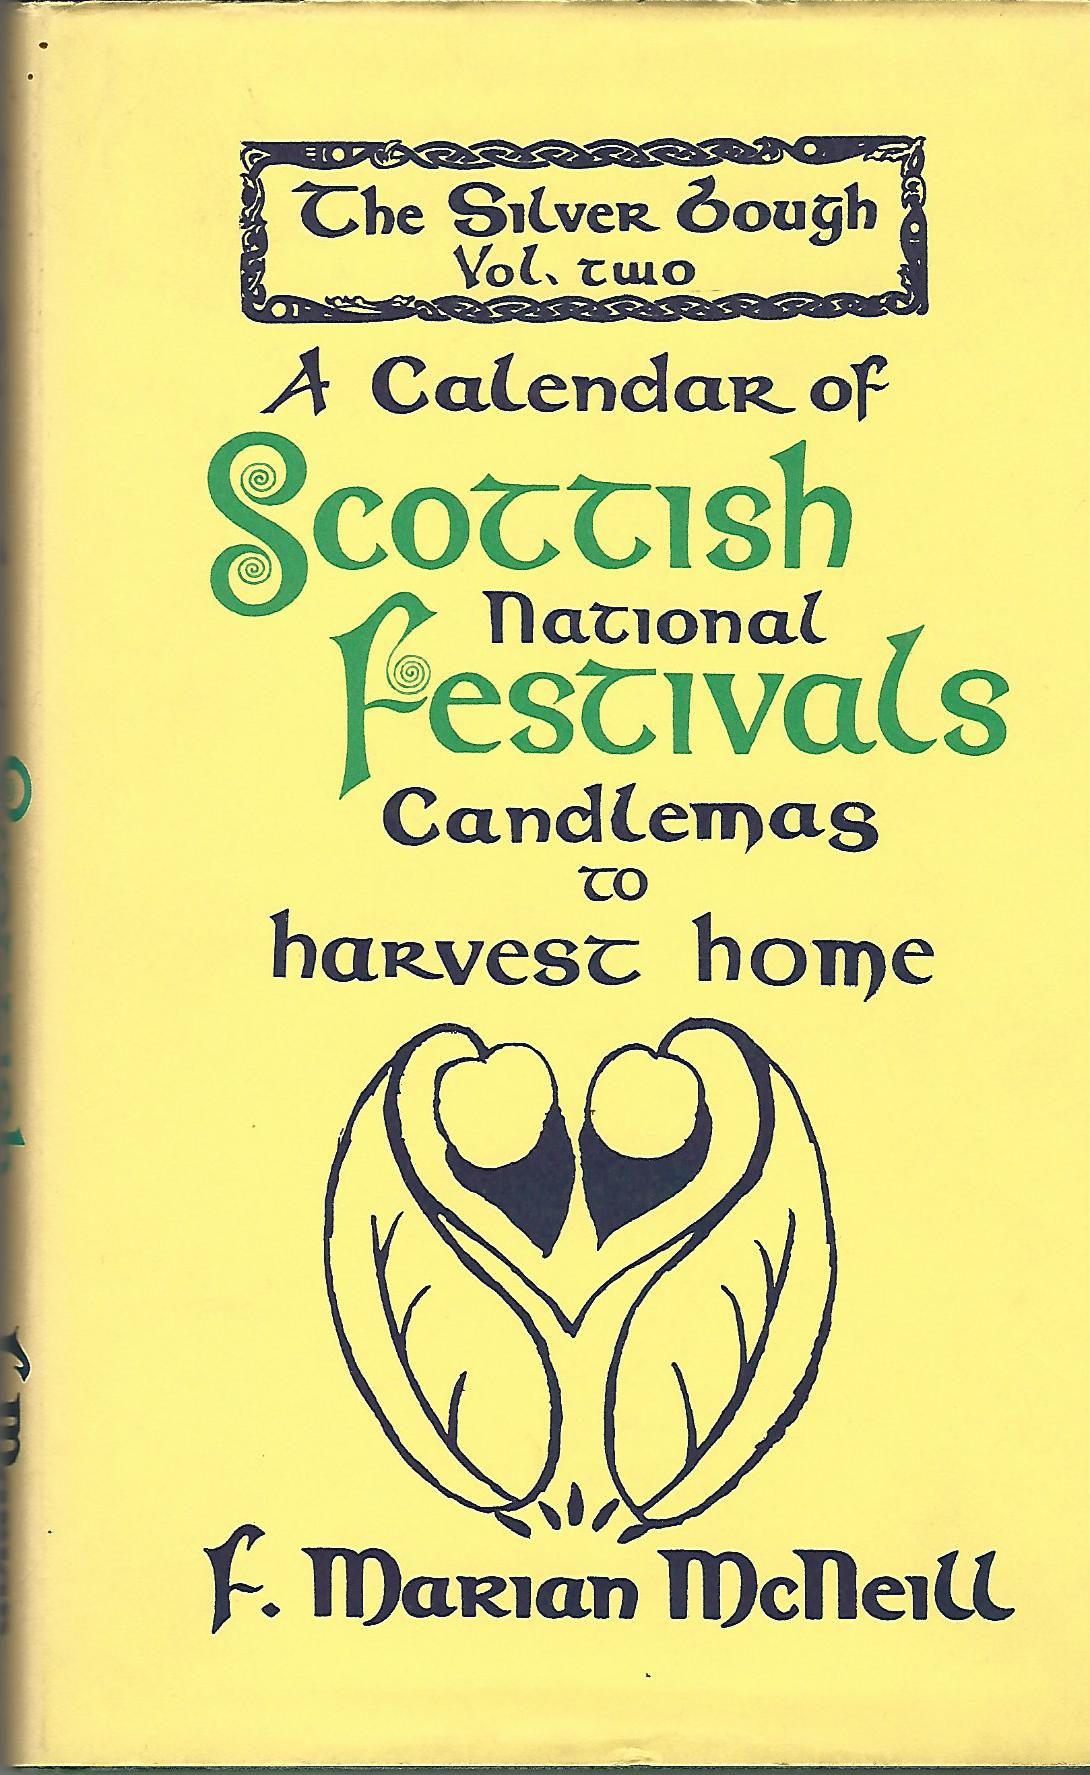 Image for The Silver Bough Volume Two: A Calendar of Scottish National Festivals, Candlemas to Harvest Home.